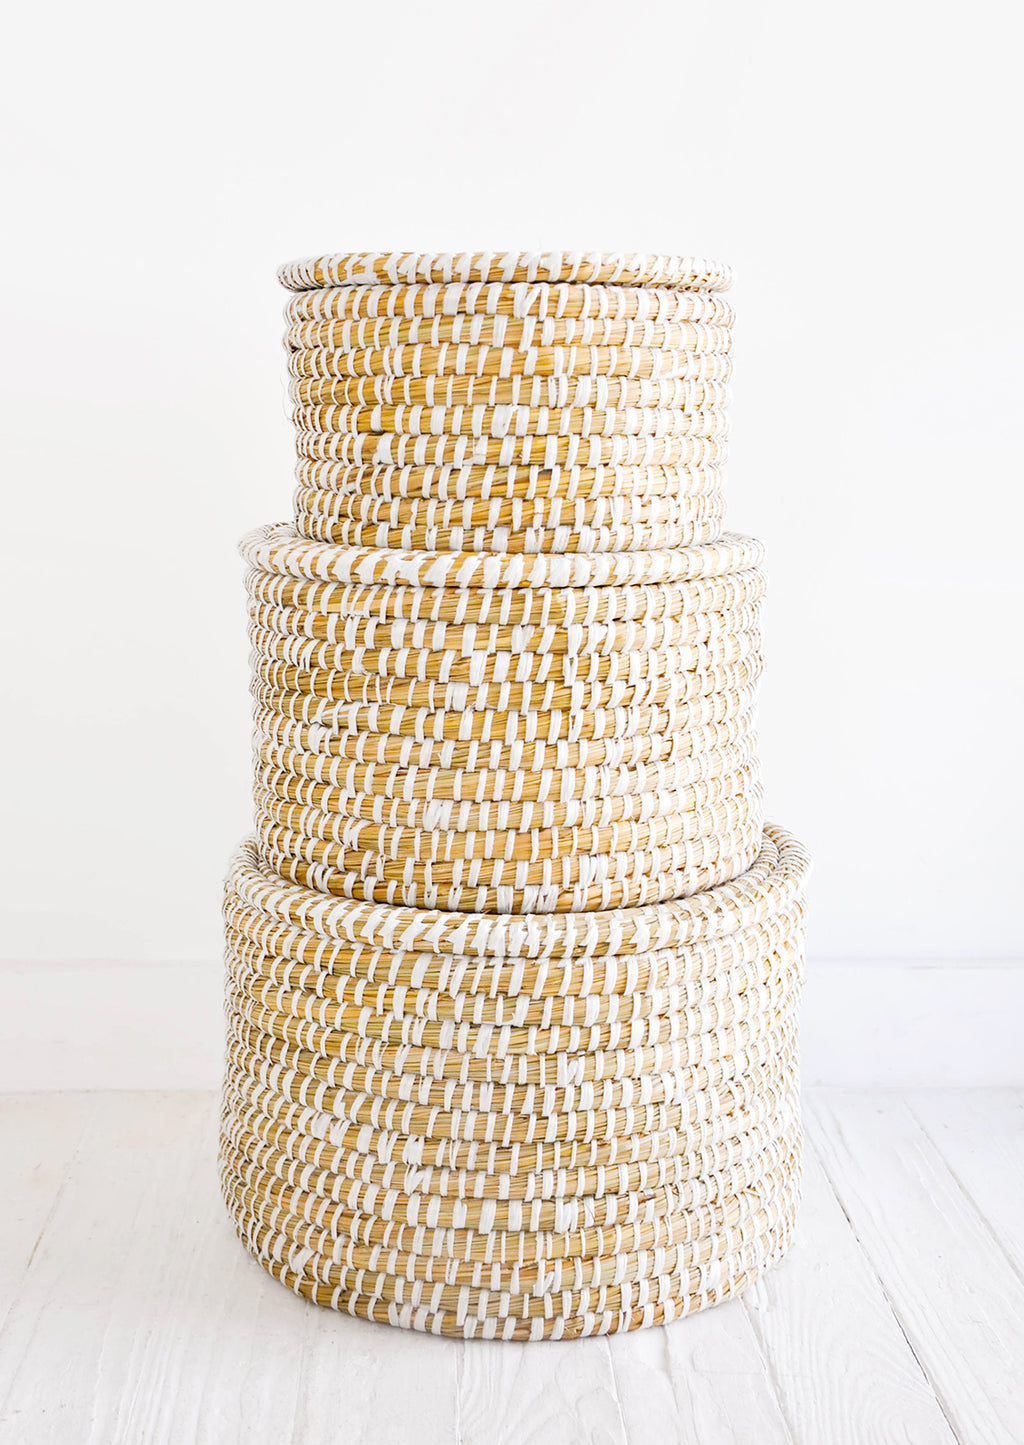 2: Stack of round, lidded storage baskets in three incremental sizes